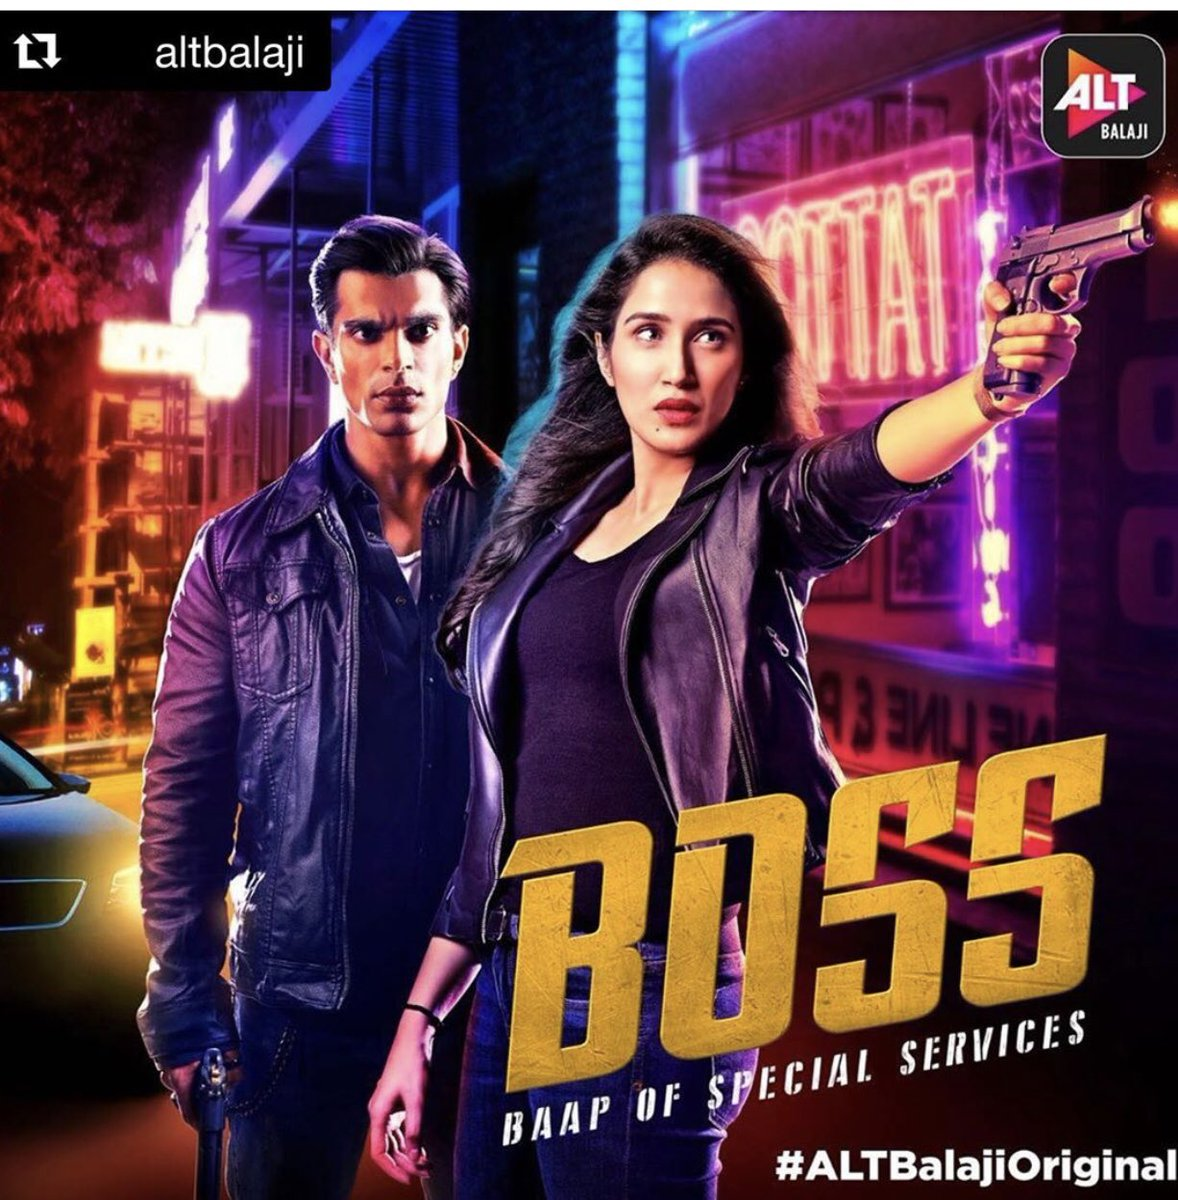 "All episodes streaming now on @altbalaji . Go watch it now . Goodluck ""House Boss"" for #Boss 😉 @sagarikavghatge @Iamksgofficial @ektaravikapoor https://t.co/hu4uIffEW4"